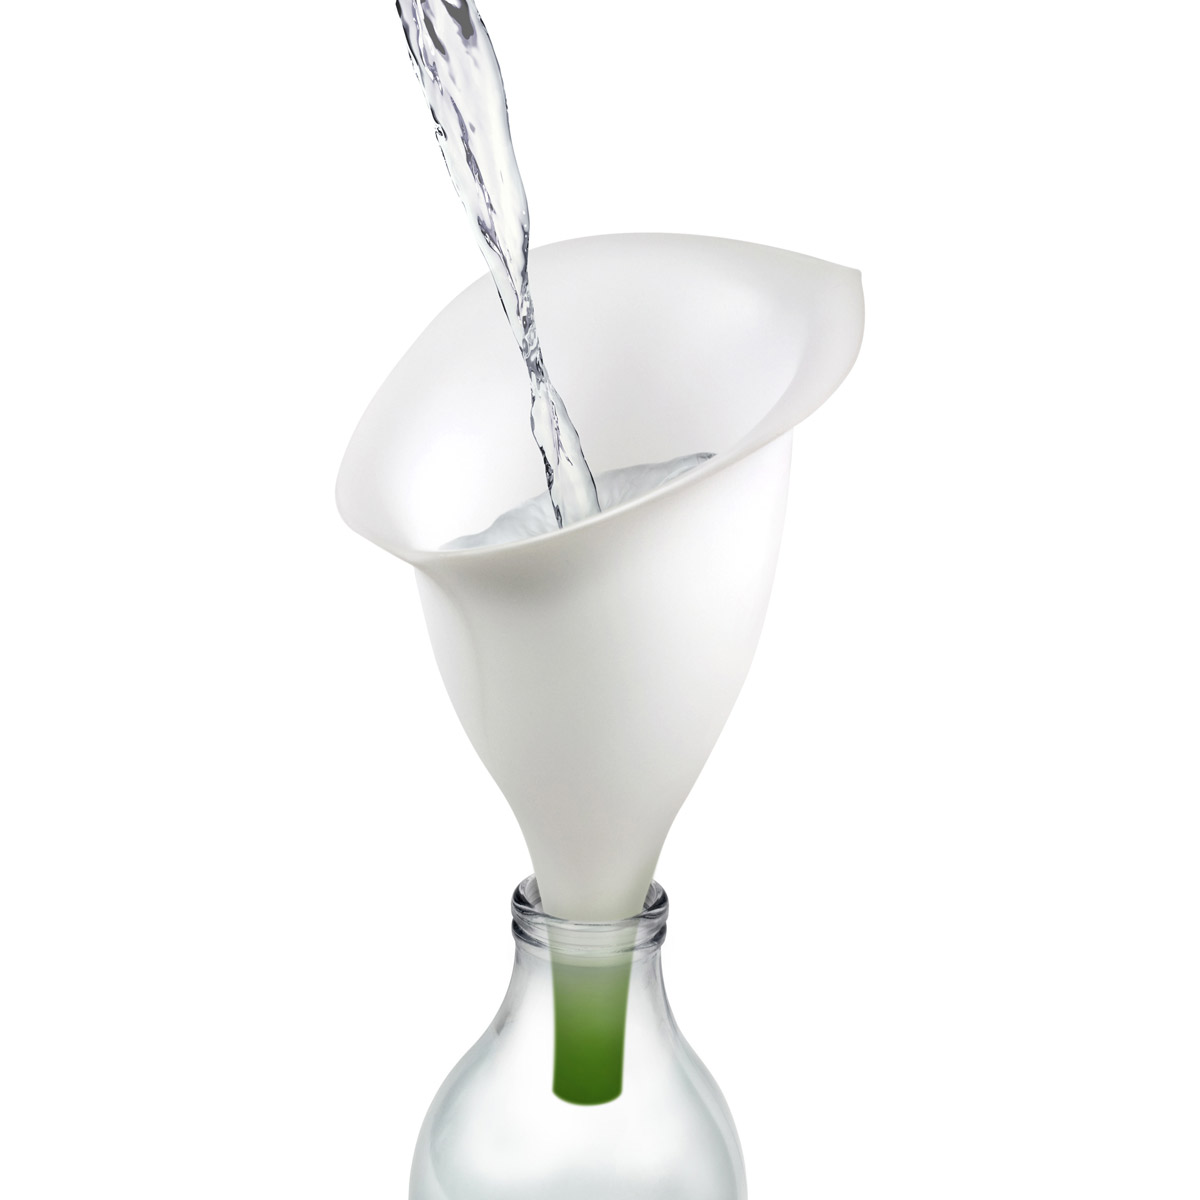 Fill-A-Lily - Silicone Flower Funnel - The Green Head